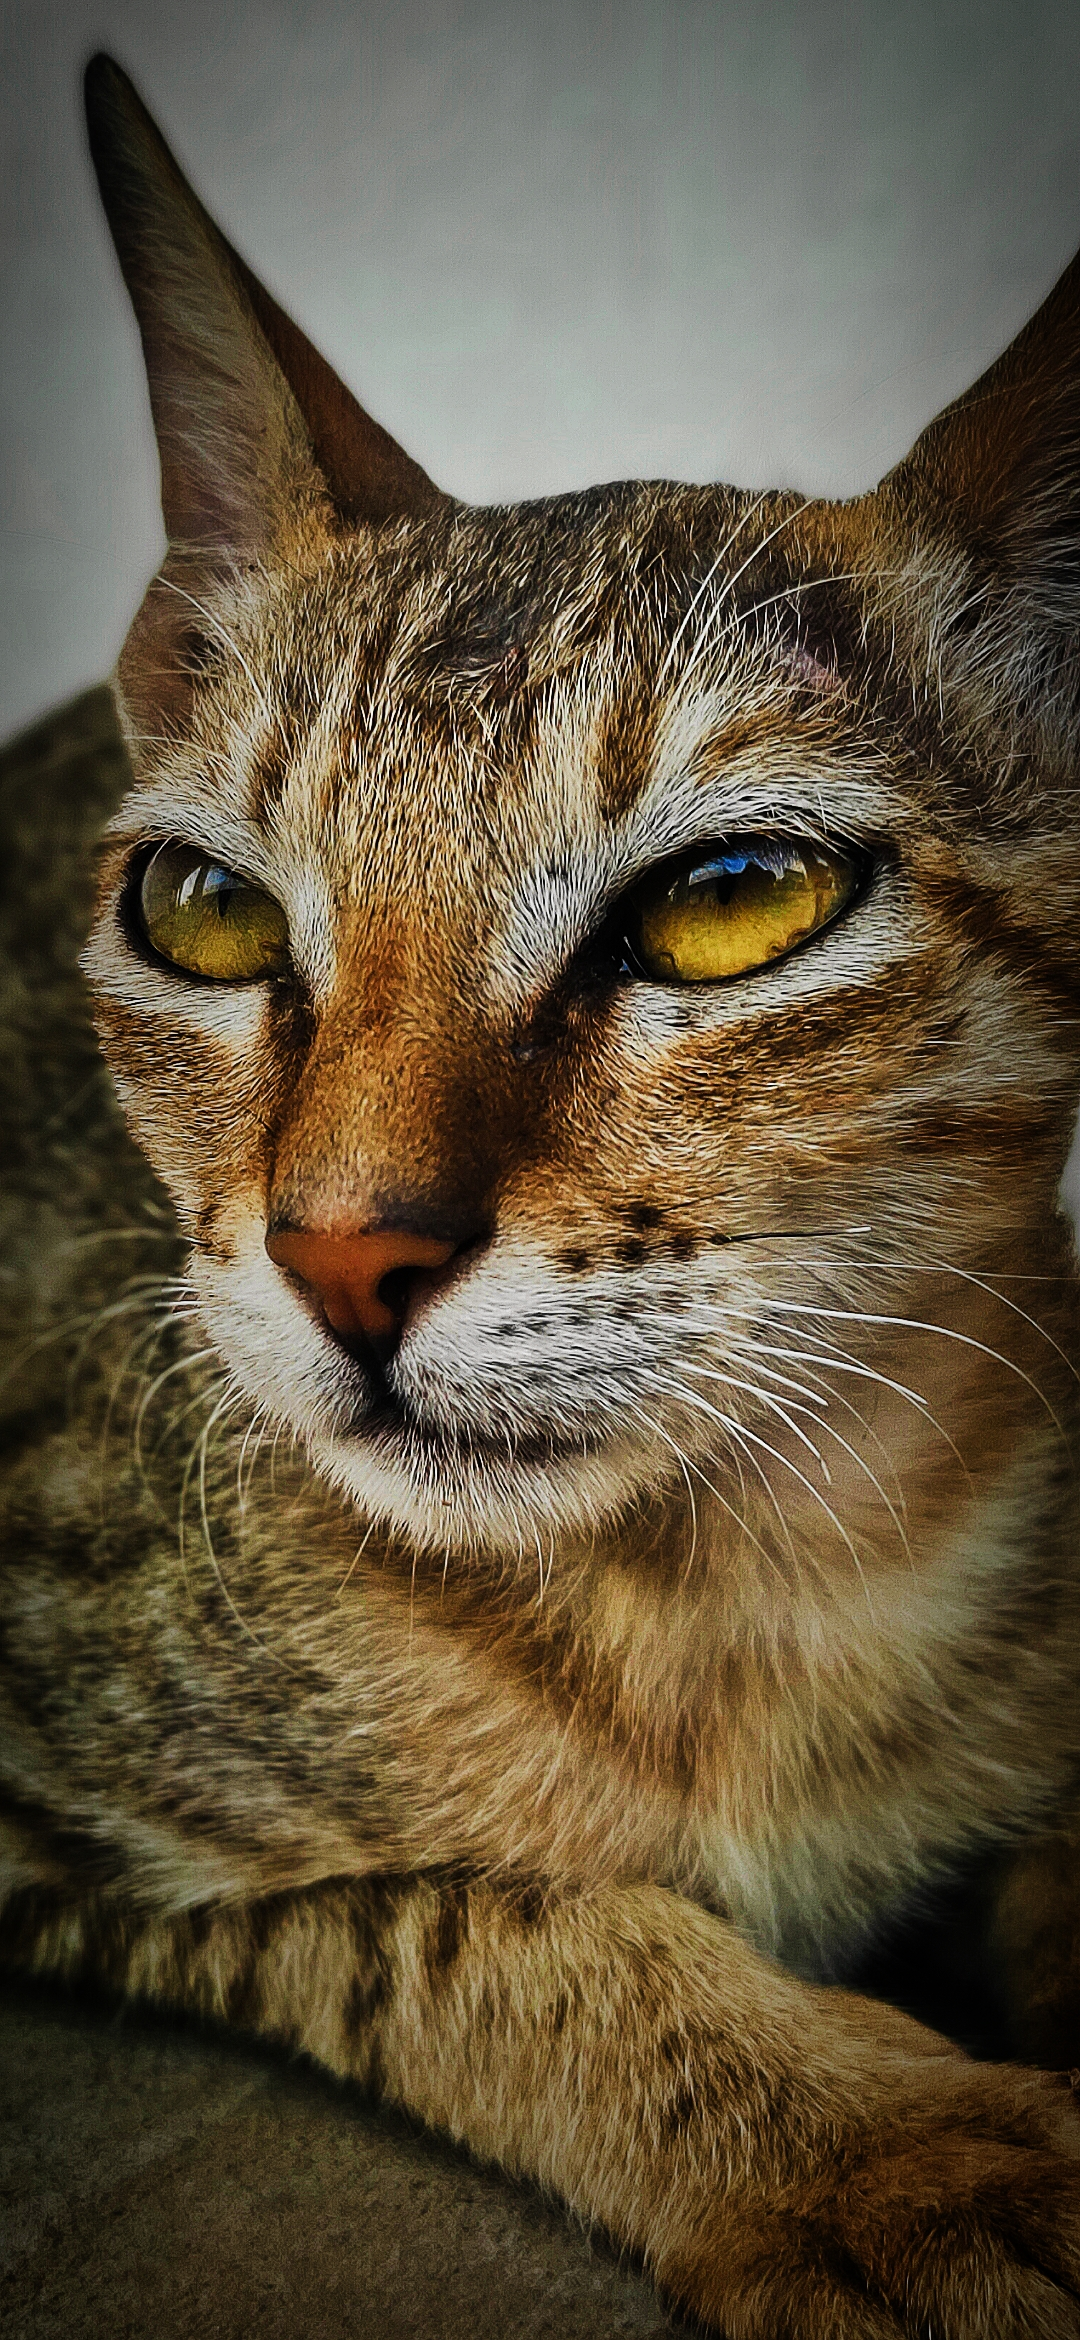 Portrait of a brown cat